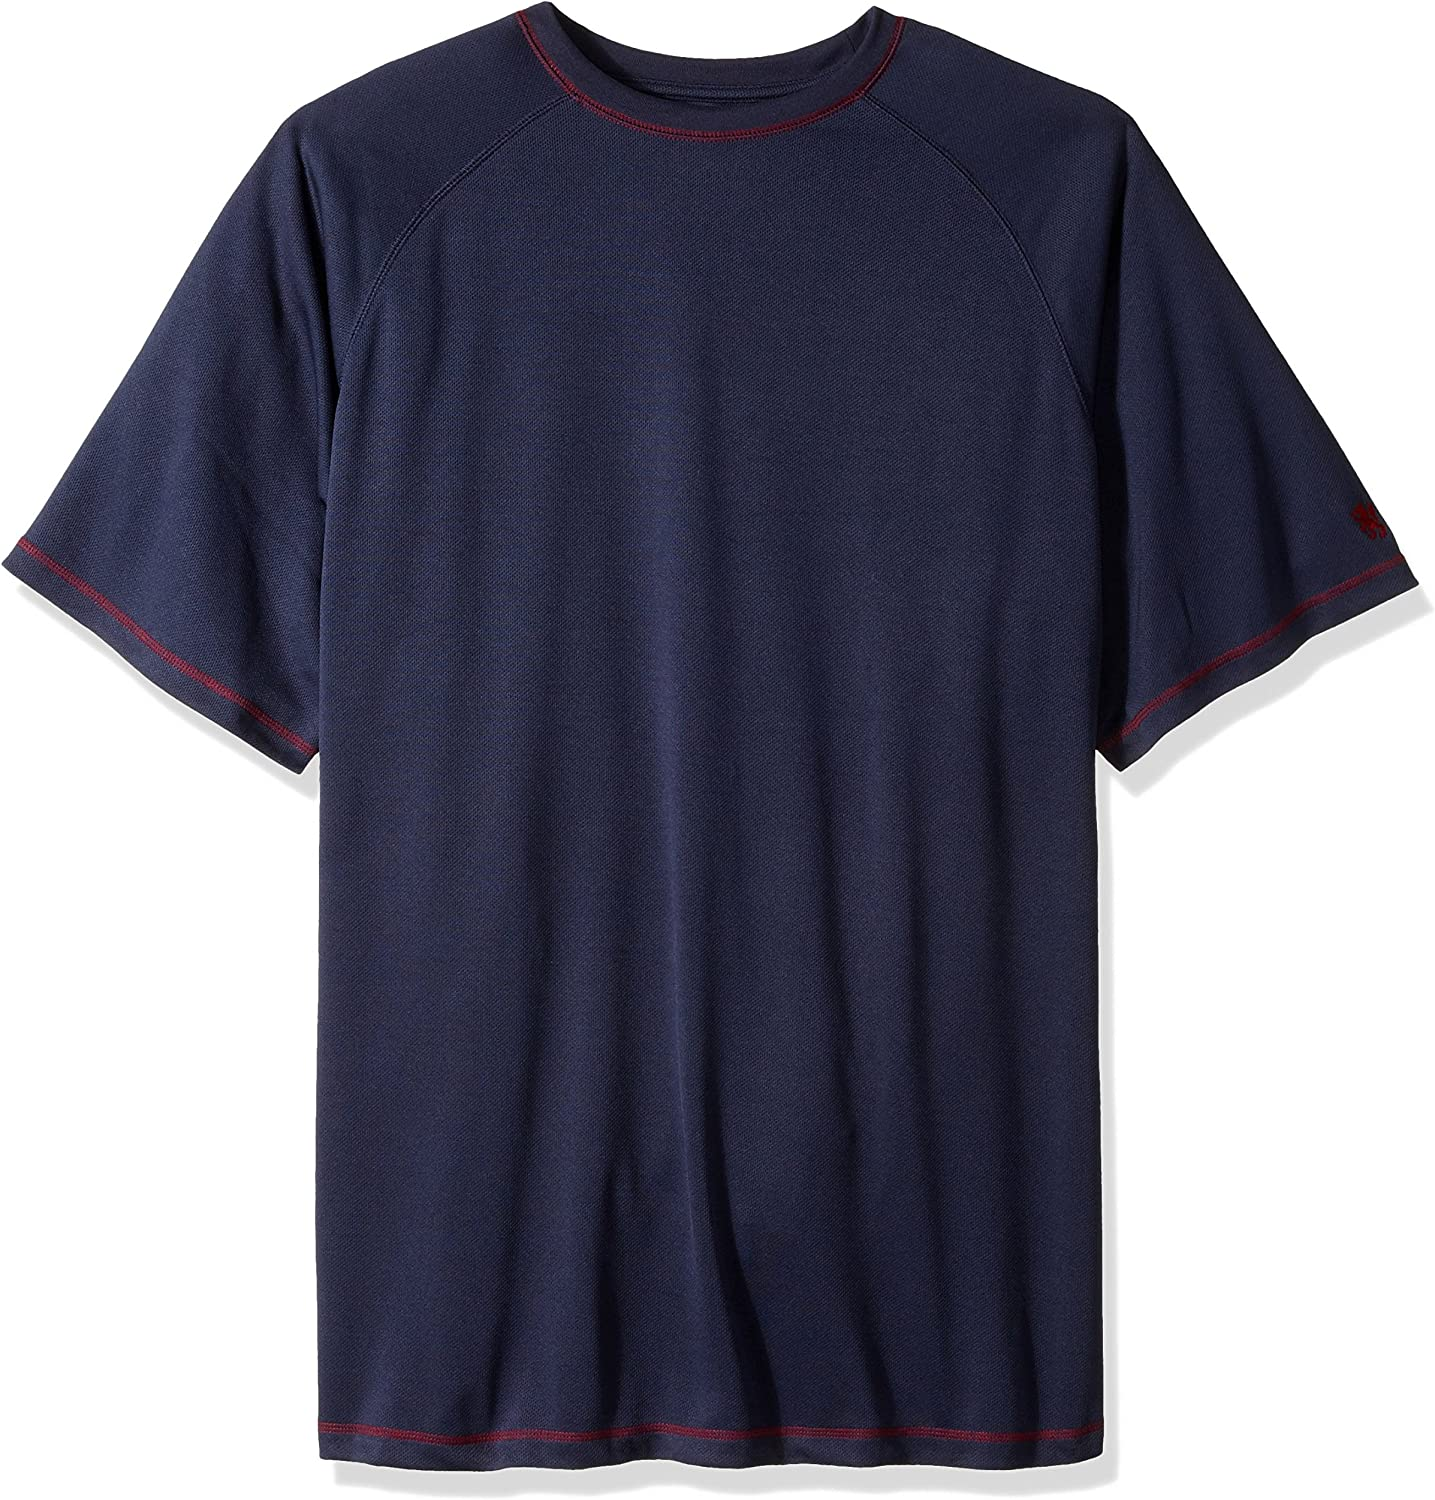 Vintage by Majestic International High quality Max 80% OFF new Men's Big and Work Out Tall S